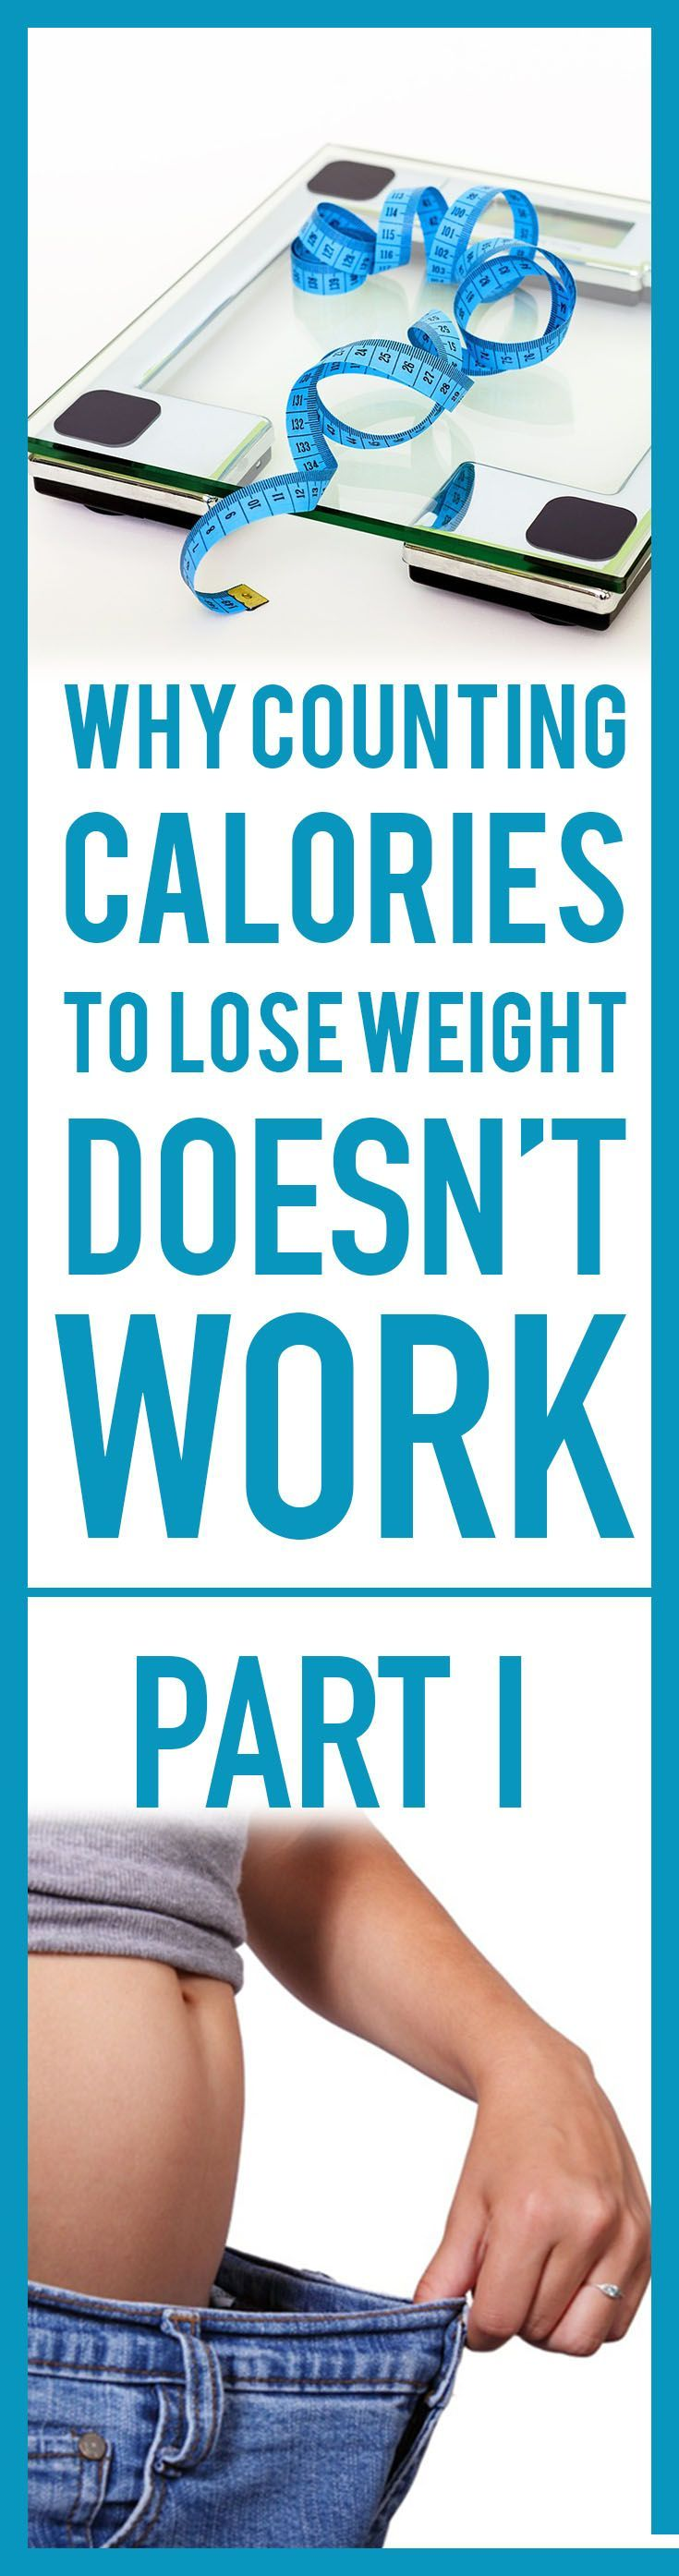 For generations, we've been taught that weight loss is a simple calculation of calories in and calories out, so counting calories to lose weight makes sense. How well as it working out for you? Not great? Don't worry- you're not alone. Read on for Part 1.